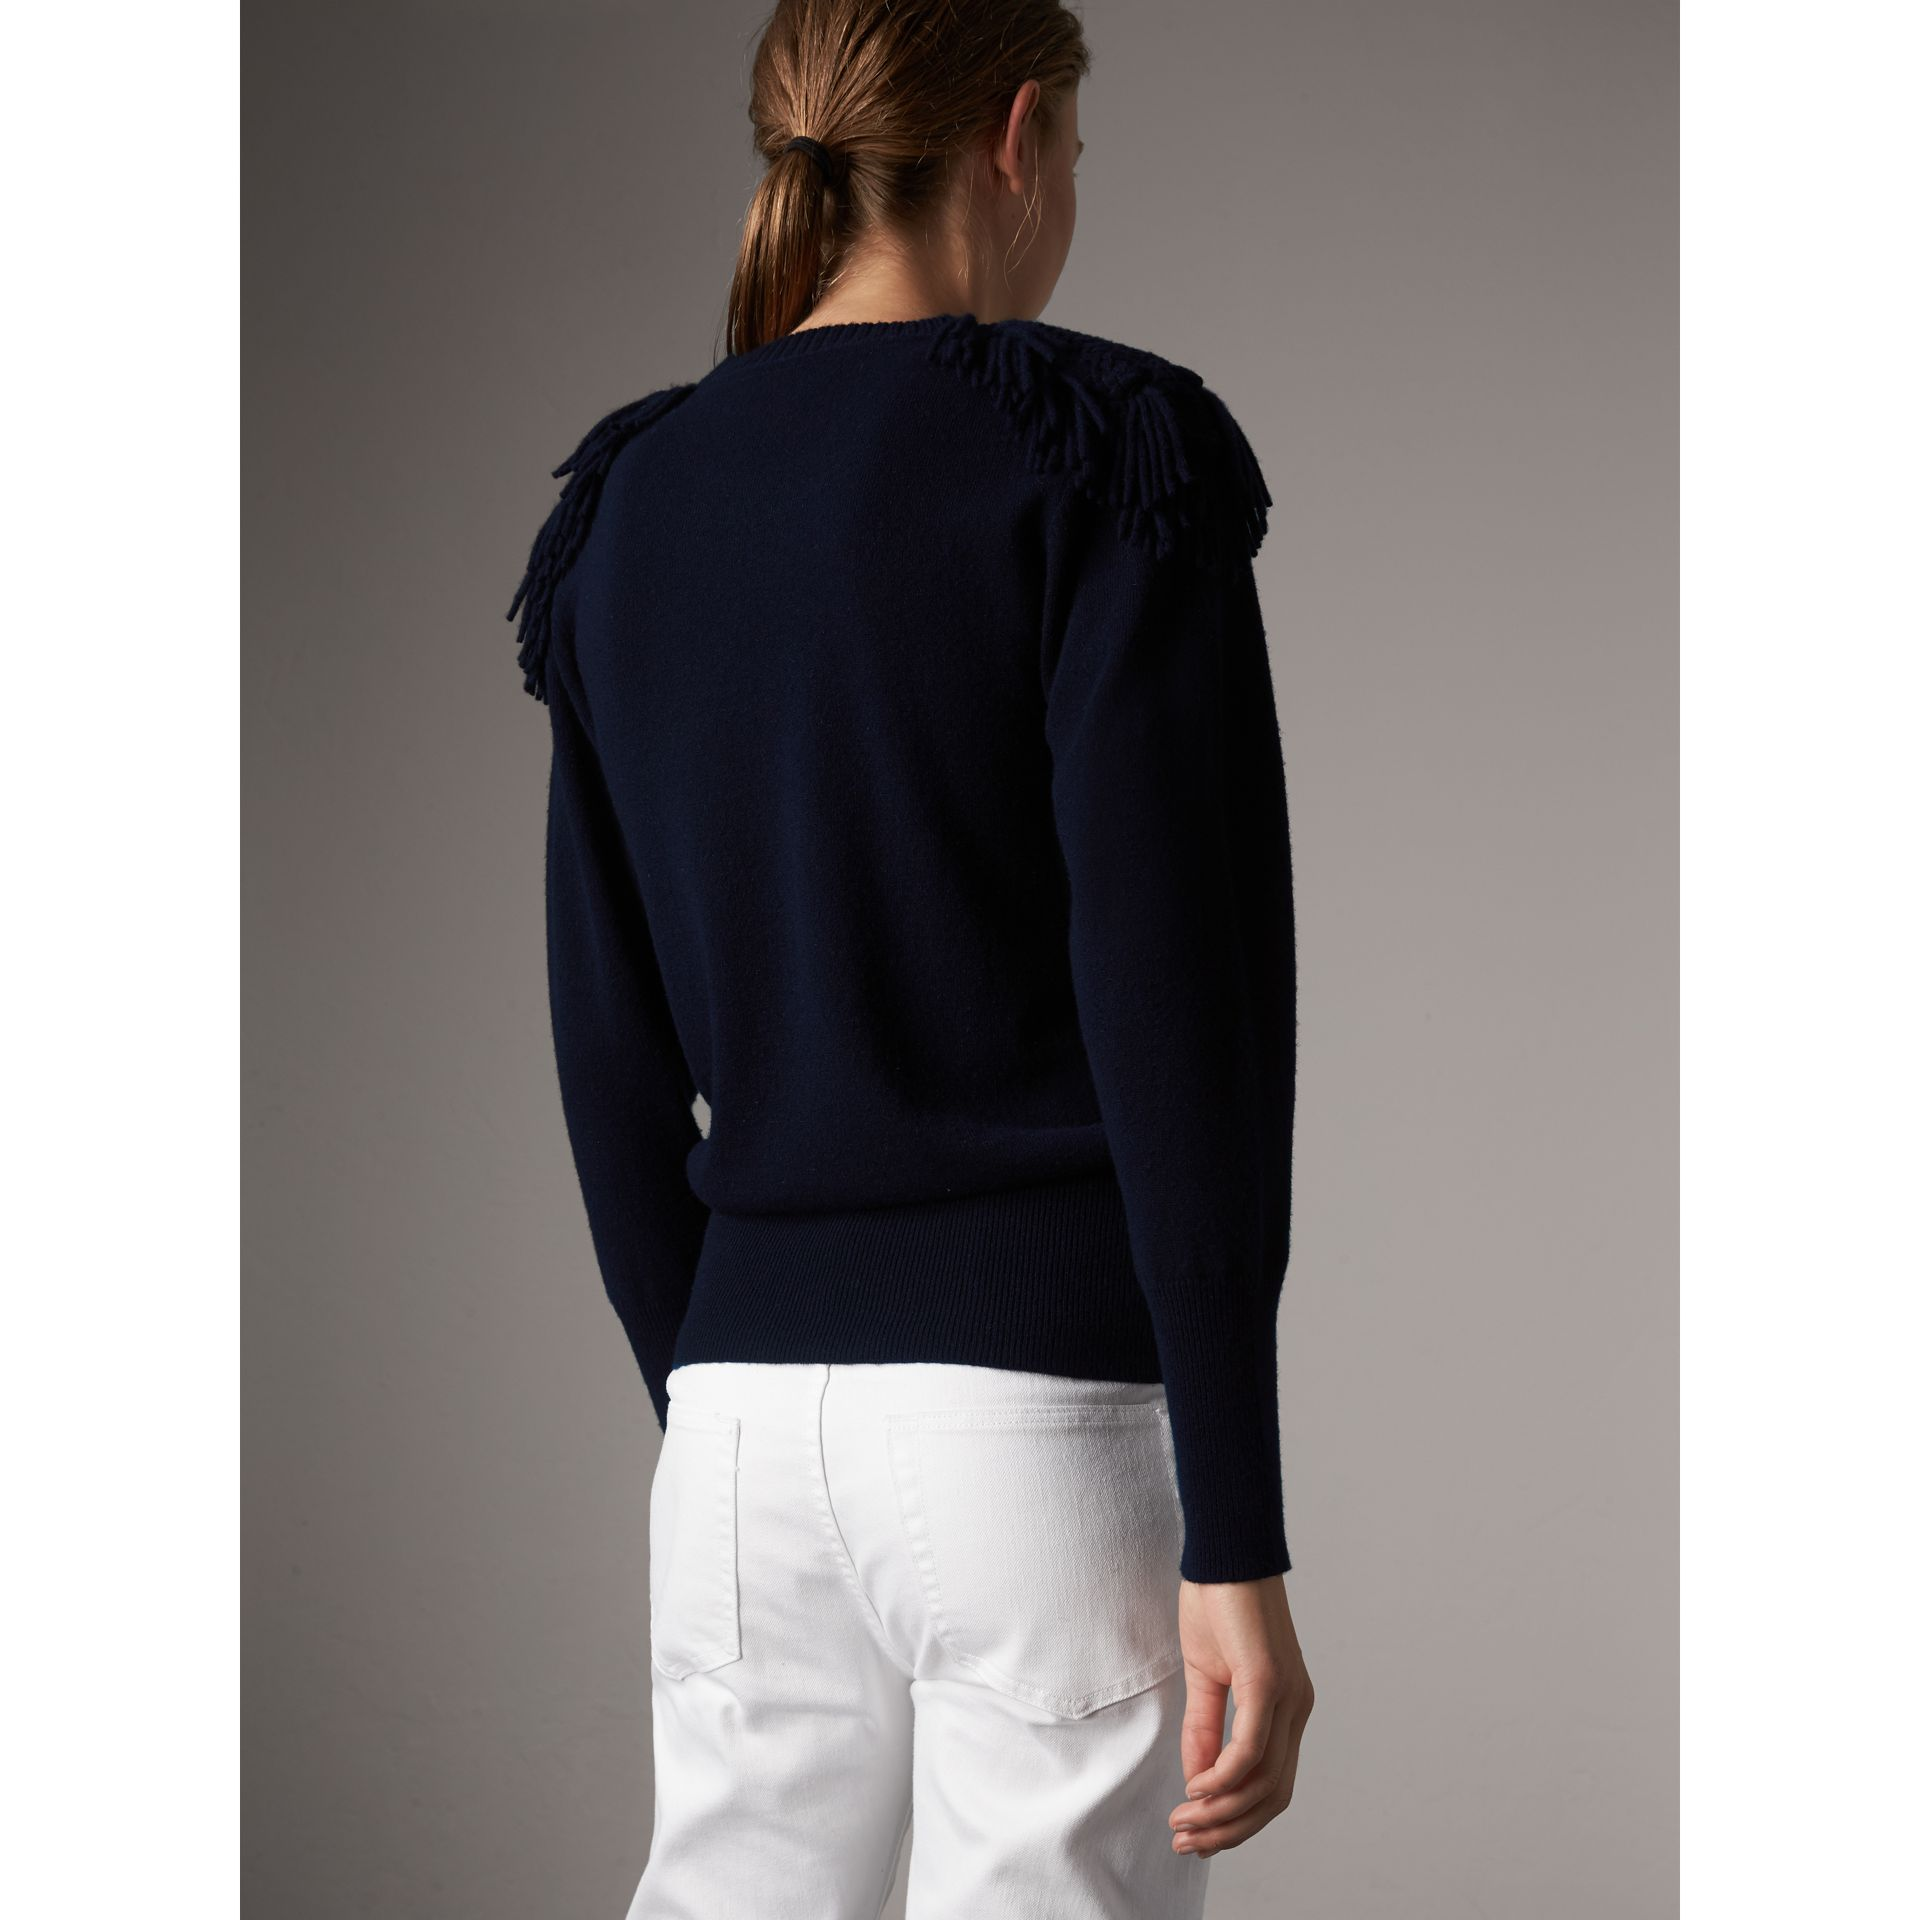 Military Braid Detail Wool Cashmere Sweater in Navy - Women | Burberry - gallery image 2